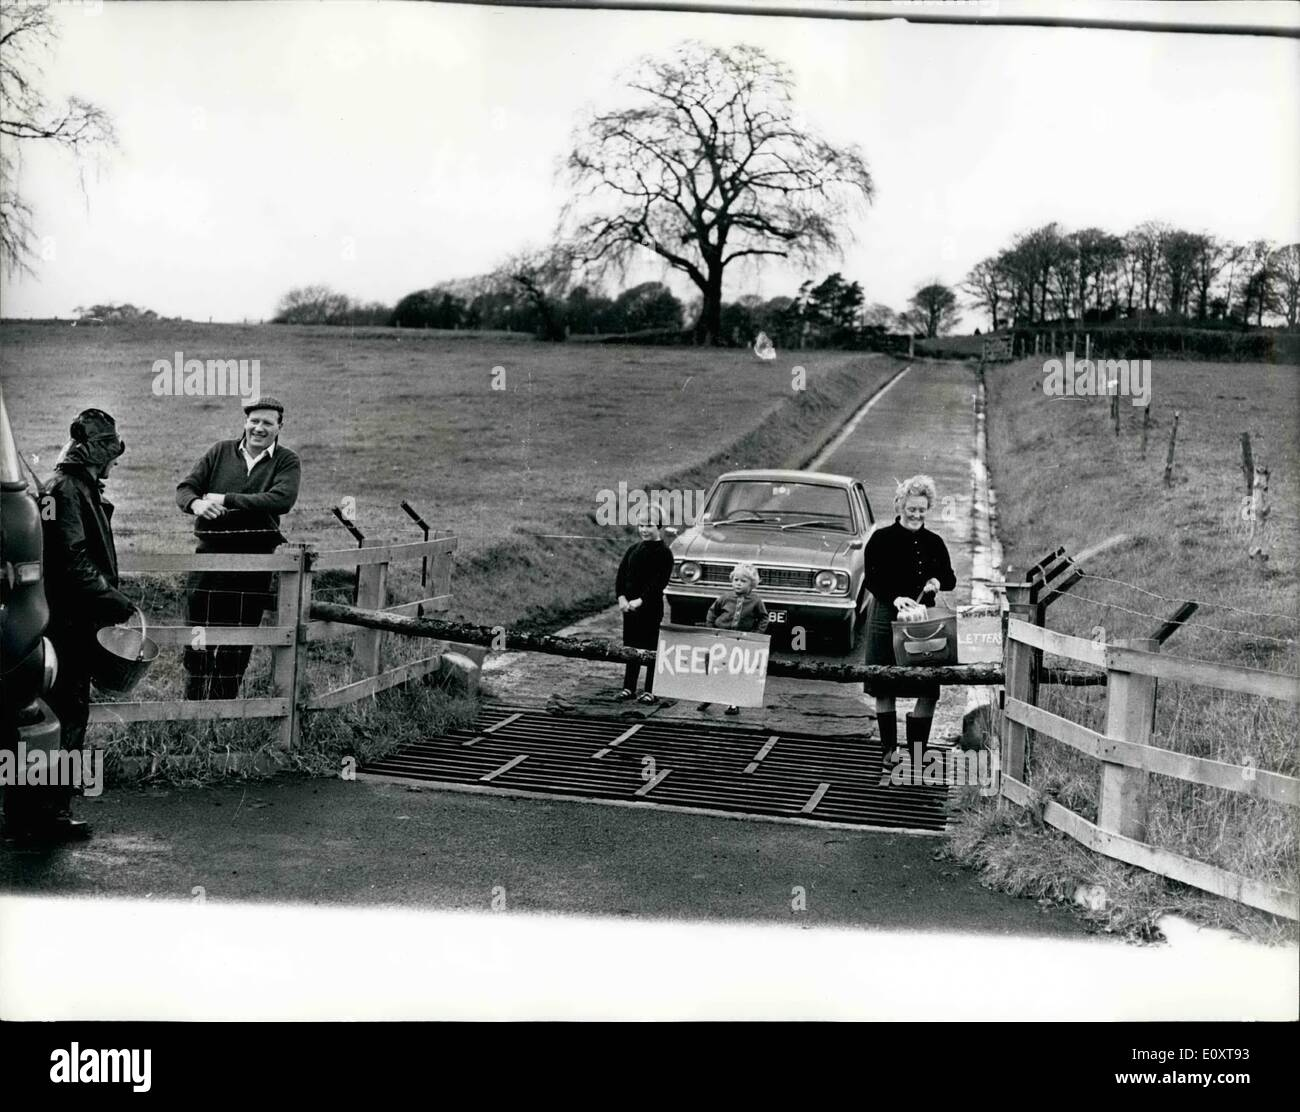 Nov. 11, 1967 - Foot And Mouth Disease Farmer Isolates Family: Farmer Herbert Morris, of Upper Sweeney Farm, Oswestry, has isolated himself and his family inside the boundaries of his farm, to prevent the spread of foot and mouth disease. Photo Shows Former Herbert Morris, in cap, on left, talks over the fence to the milks collection man, whilst his wife, Doreen collects provisions, papers and mail from a collecting box inside the gate, Looking on are the Morris Children, Carol, 2 and Susan, 6. - Stock Image